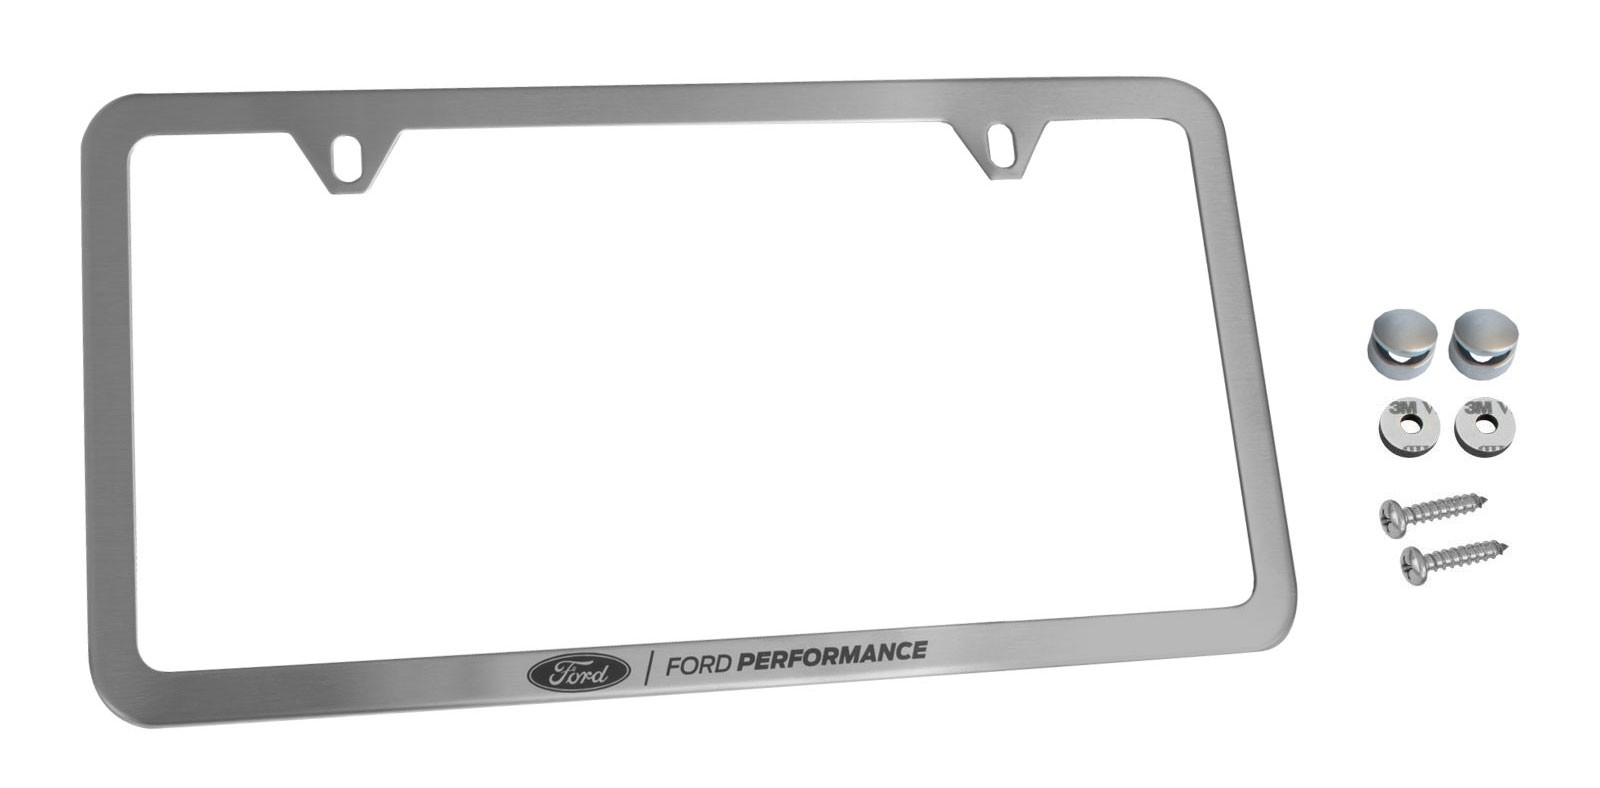 Ford Performance License Plate Frame - Brushed Stainless Steel